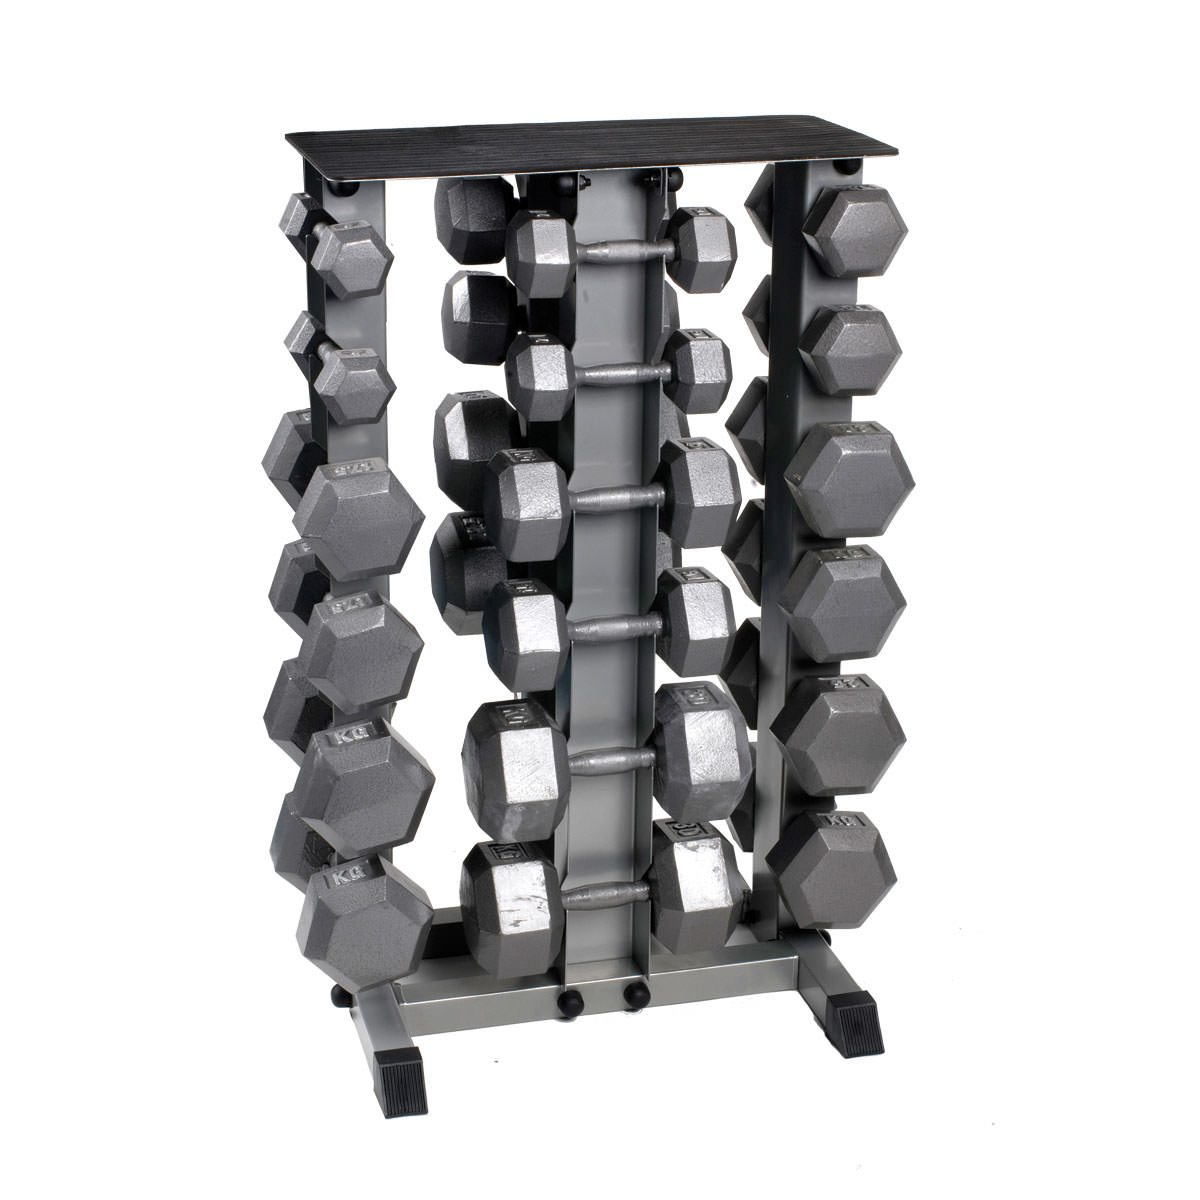 Hex Dumbbell Set With Rack by Body Power